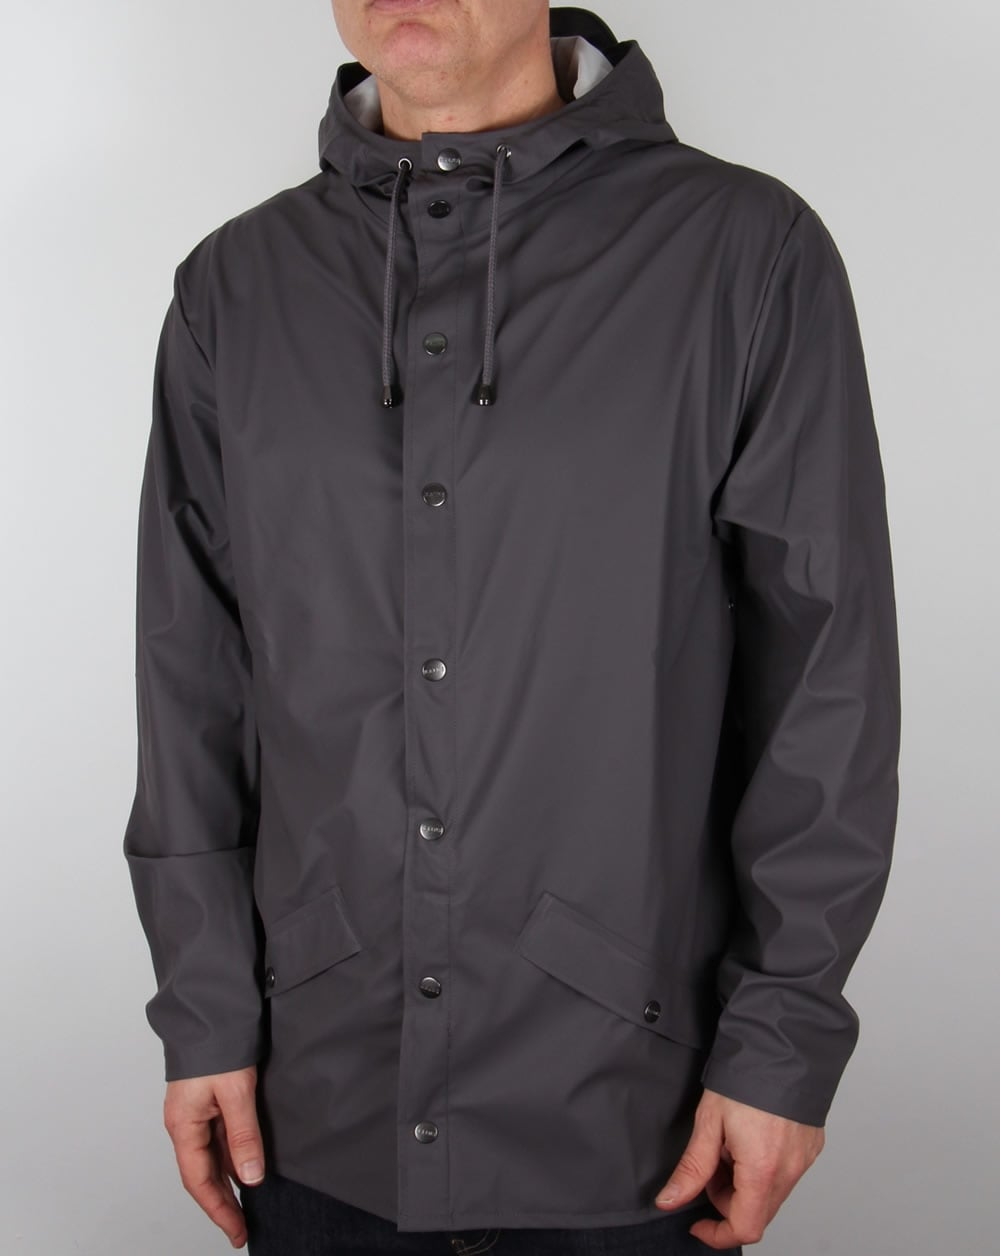 Rains Jacket Smoke,rainproof,coat,rubberised,parka,mens